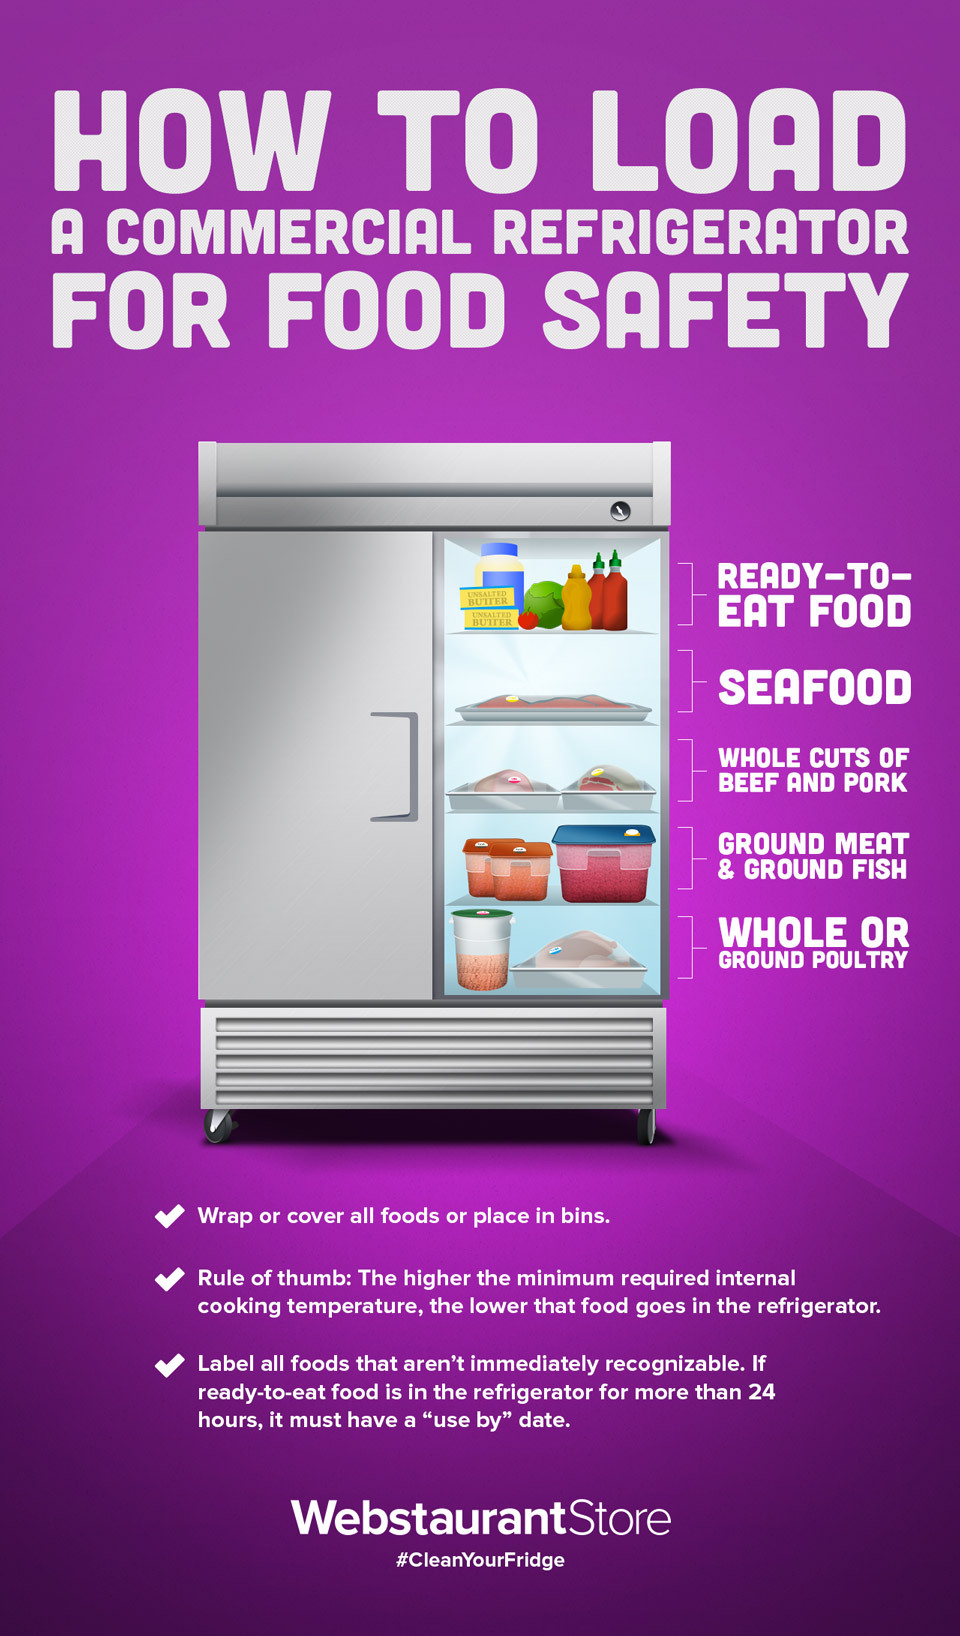 Cleaning your restaurant fridge commercial fridge cleaning for How to keep kitchen clean and organized